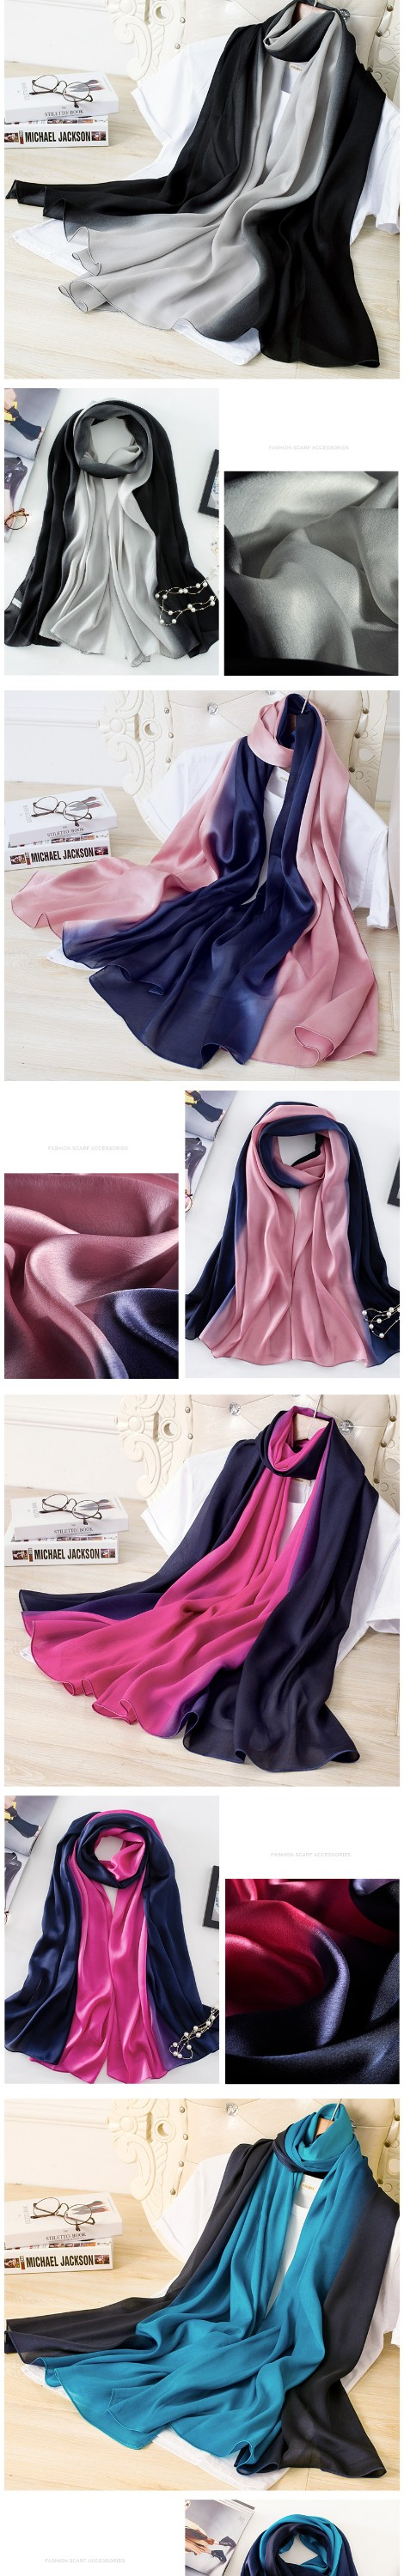 2017 high quality Large polyester long shawl muslim hijab scarf